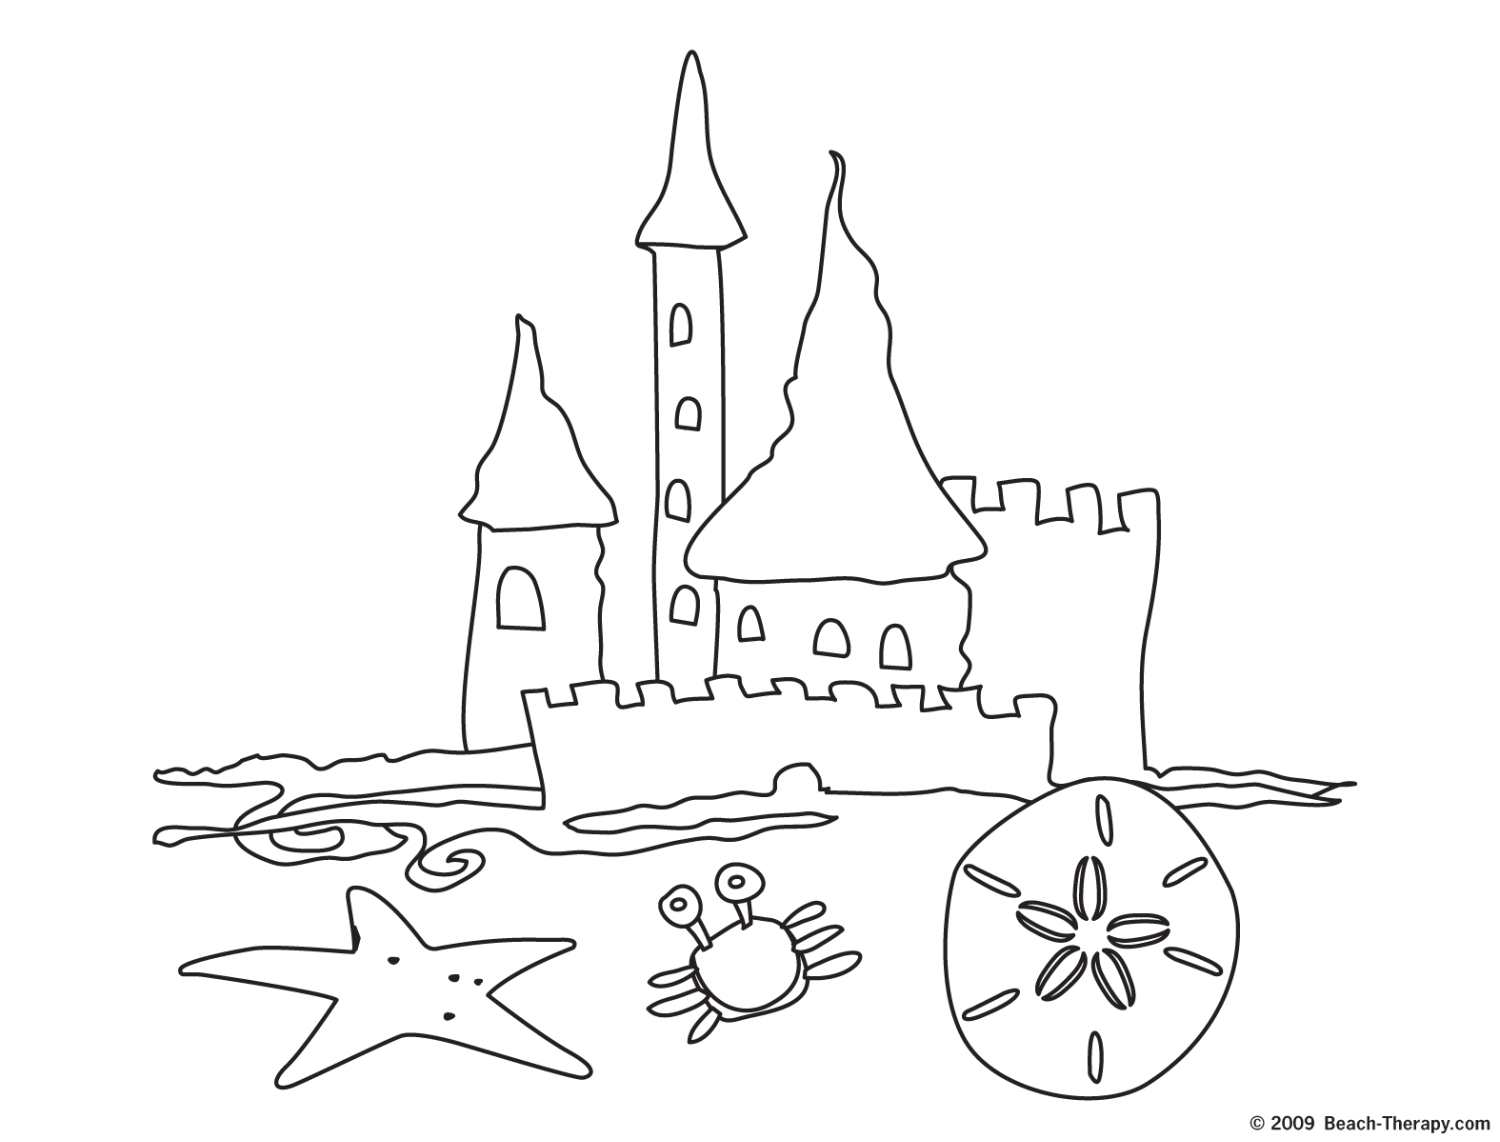 Printable coloring pages sand castle - Sand Castle Coloring Page